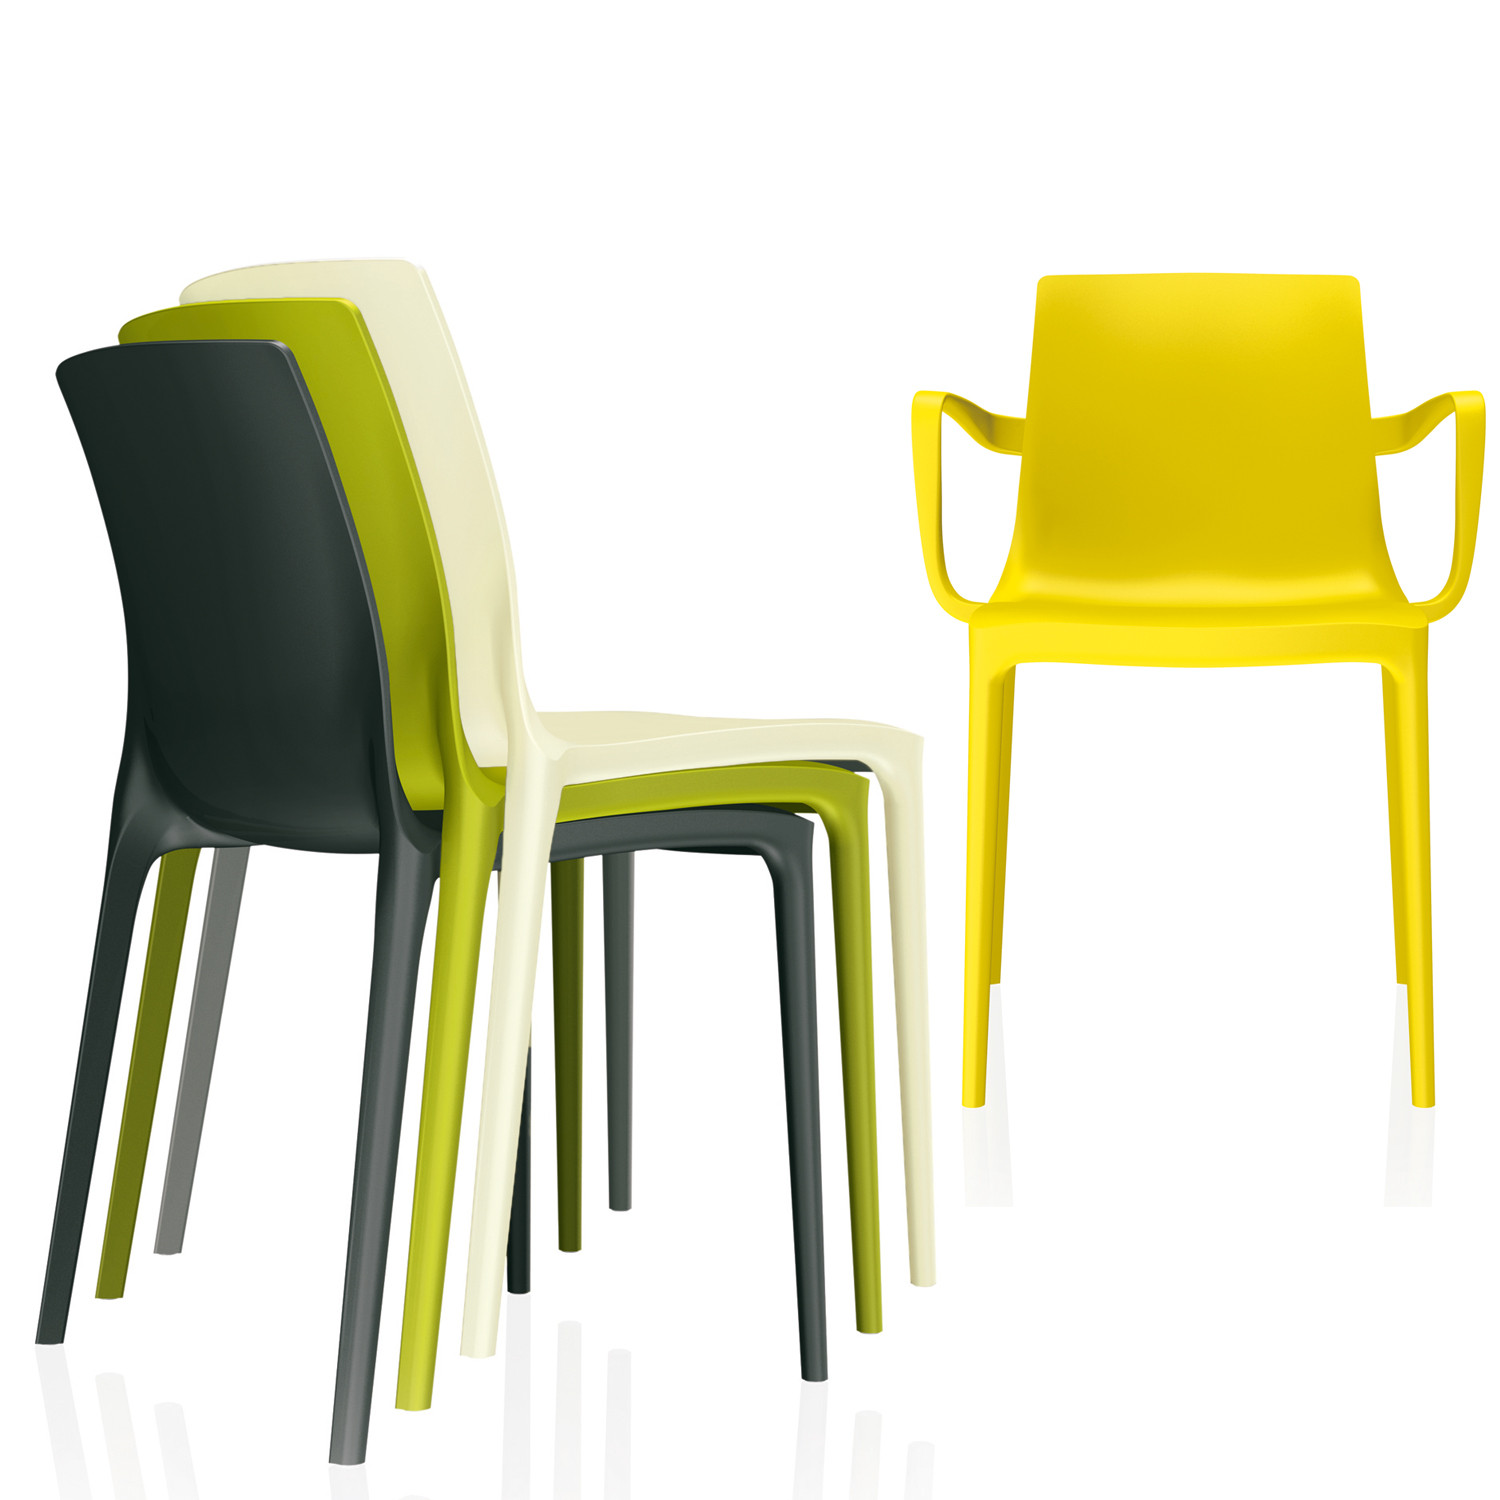 Brunner Twin Chairs are available with or without armchairs